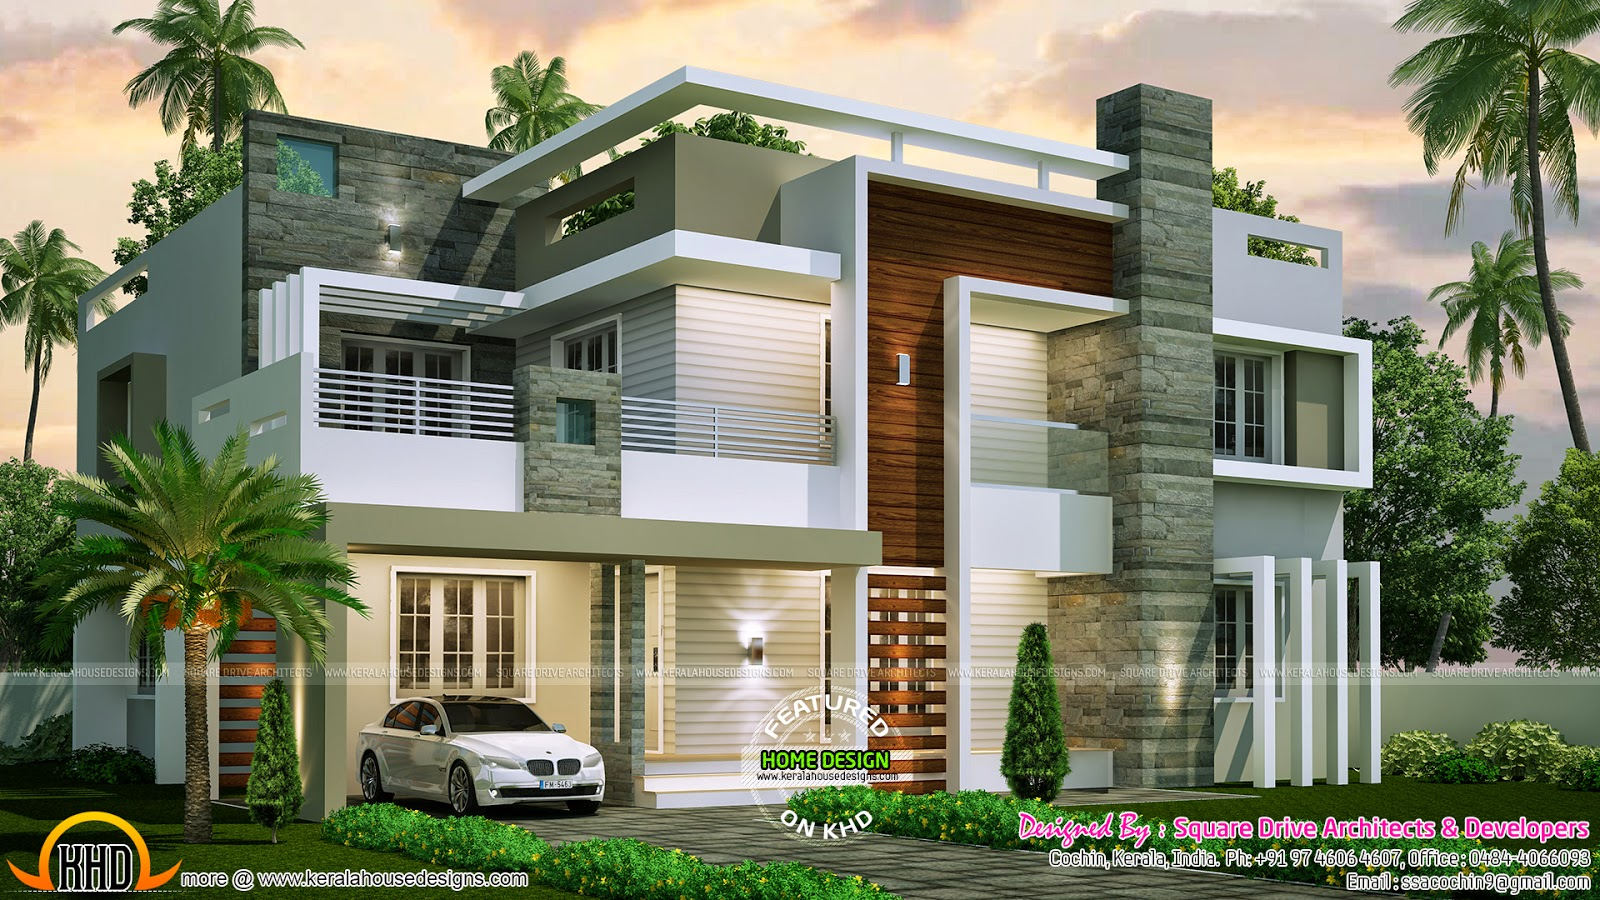 4 bedroom contemporary home design kerala home design and floor plans House plans and designs